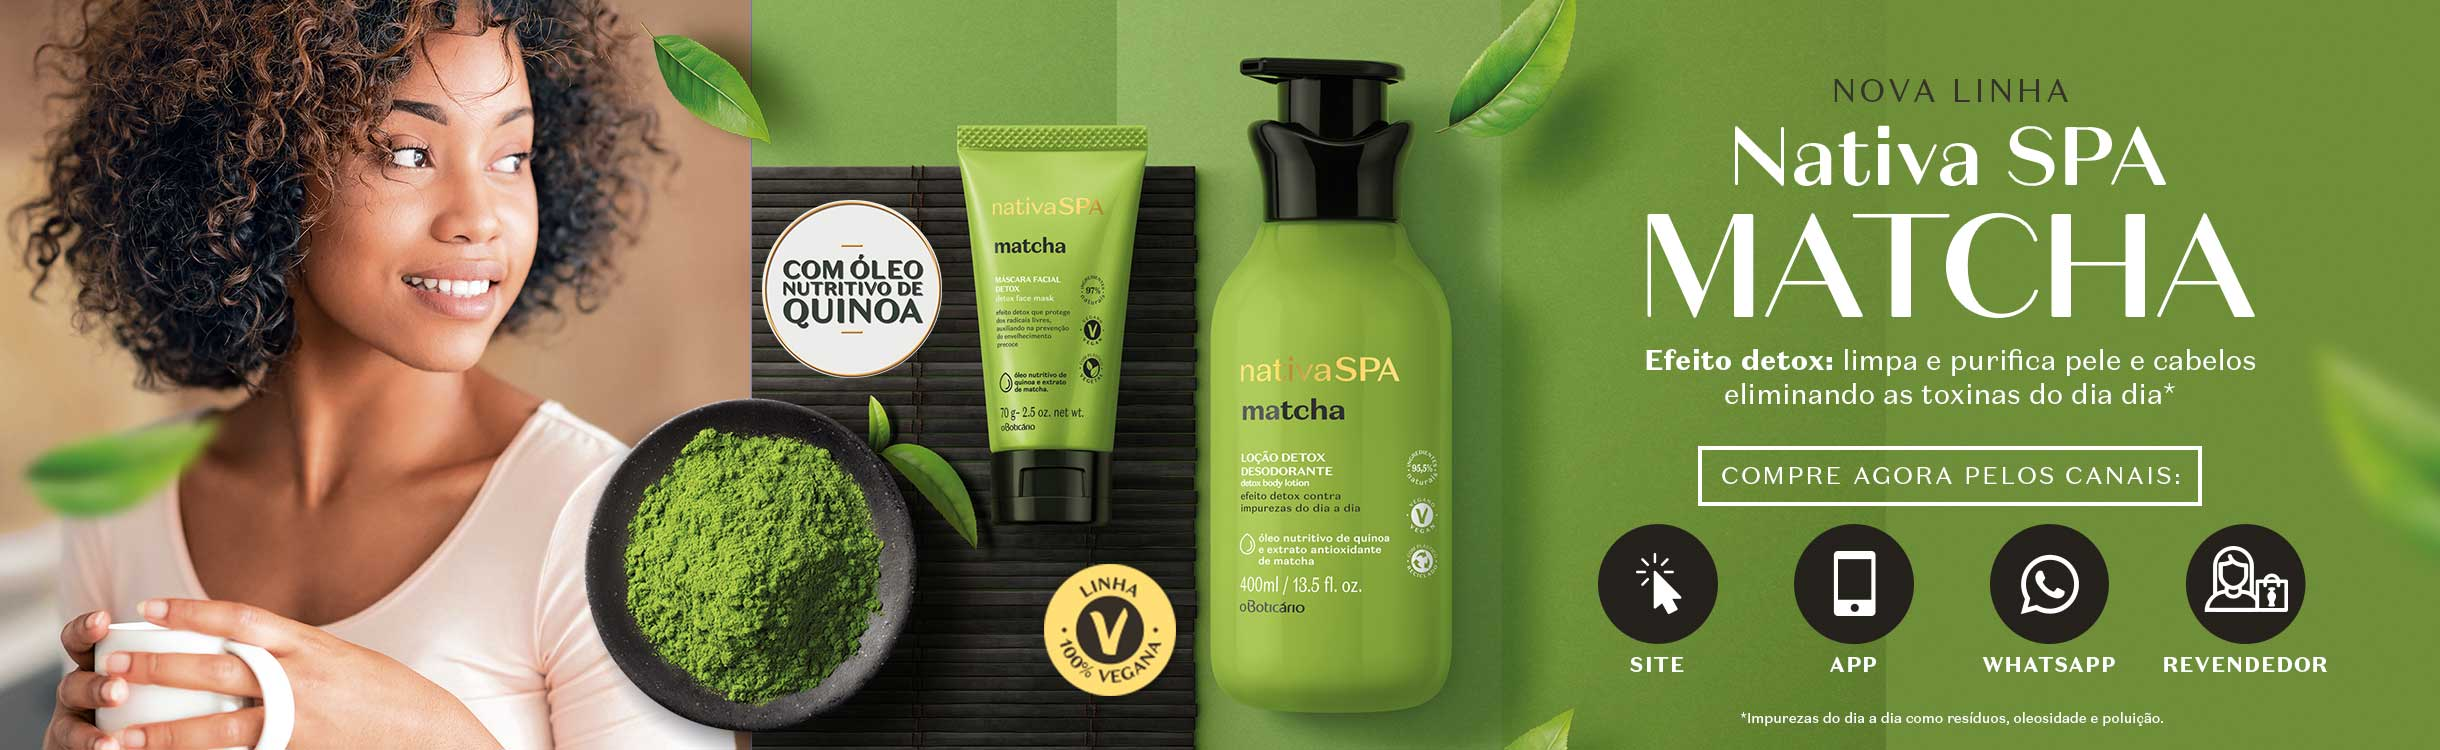 Nativa SPA Matcha